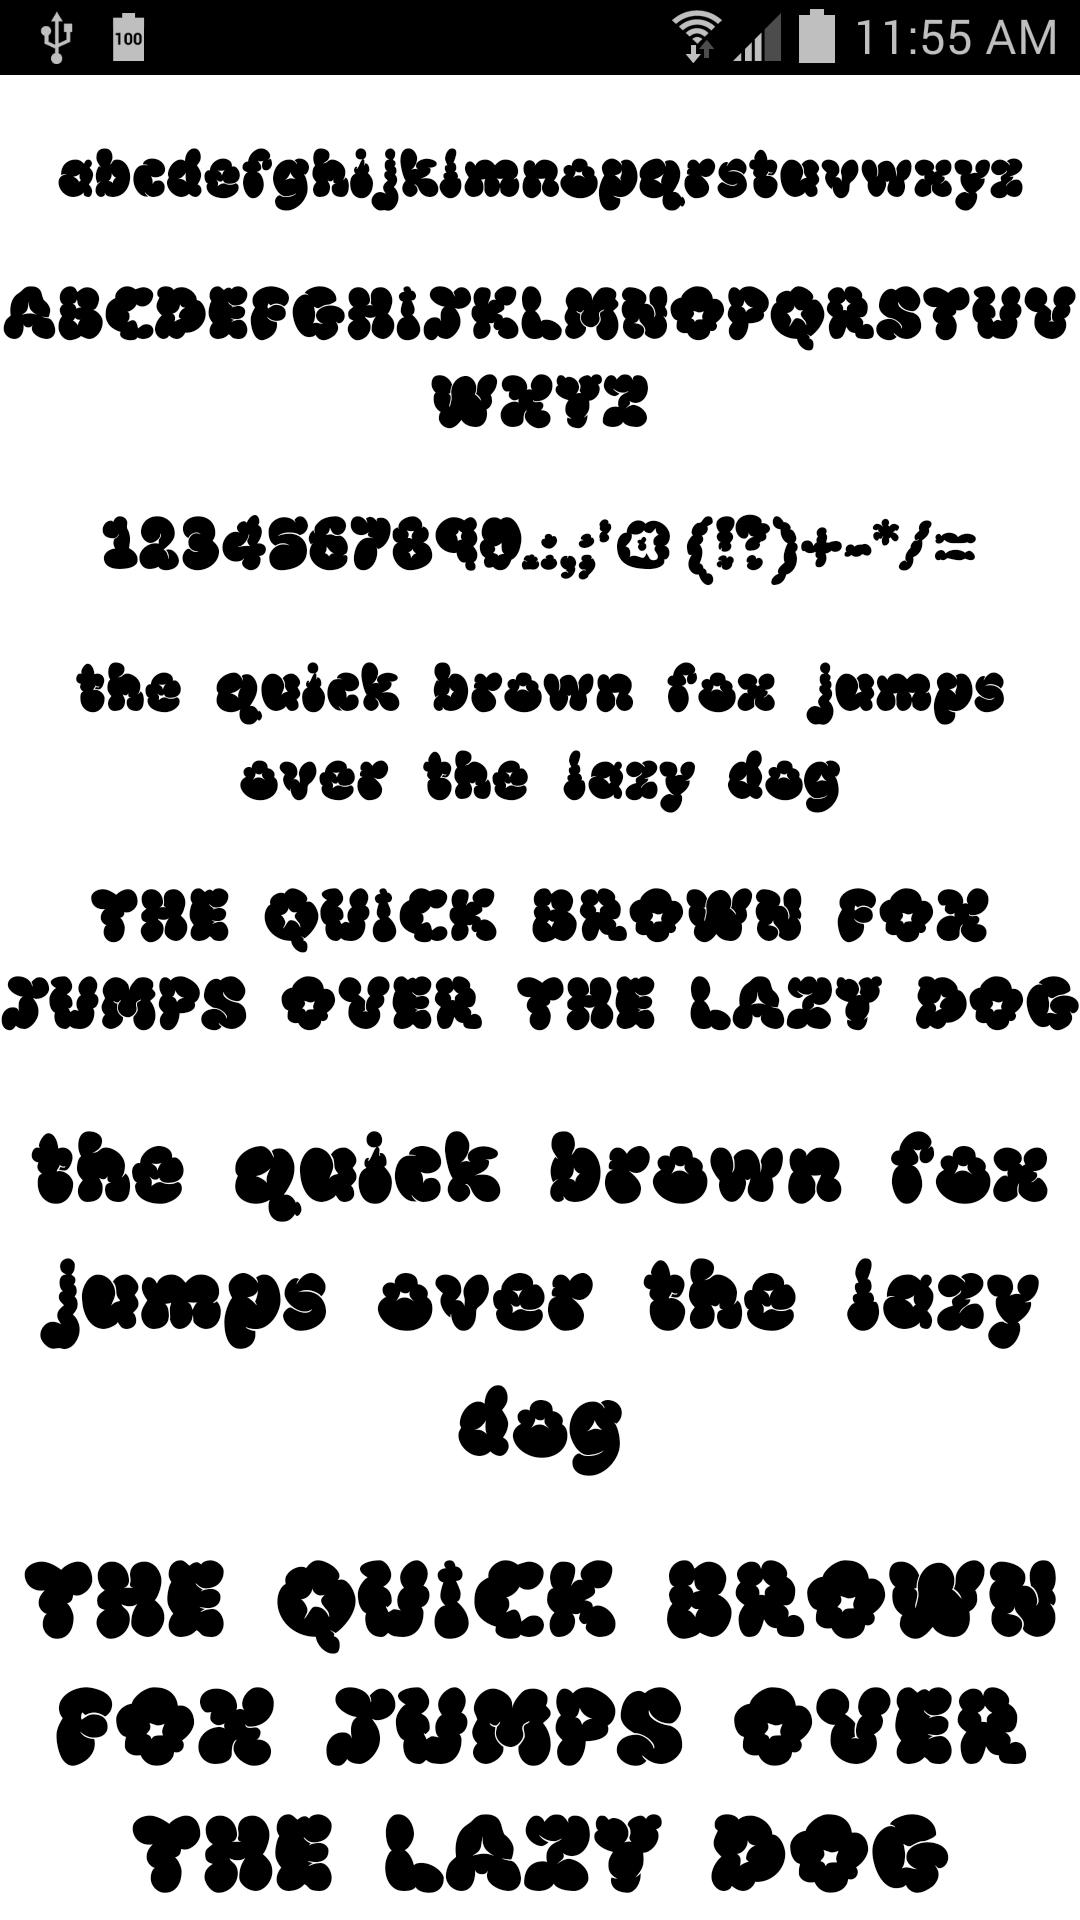 Download Fonts for FlipFont 50 #8 for Android - APK Download